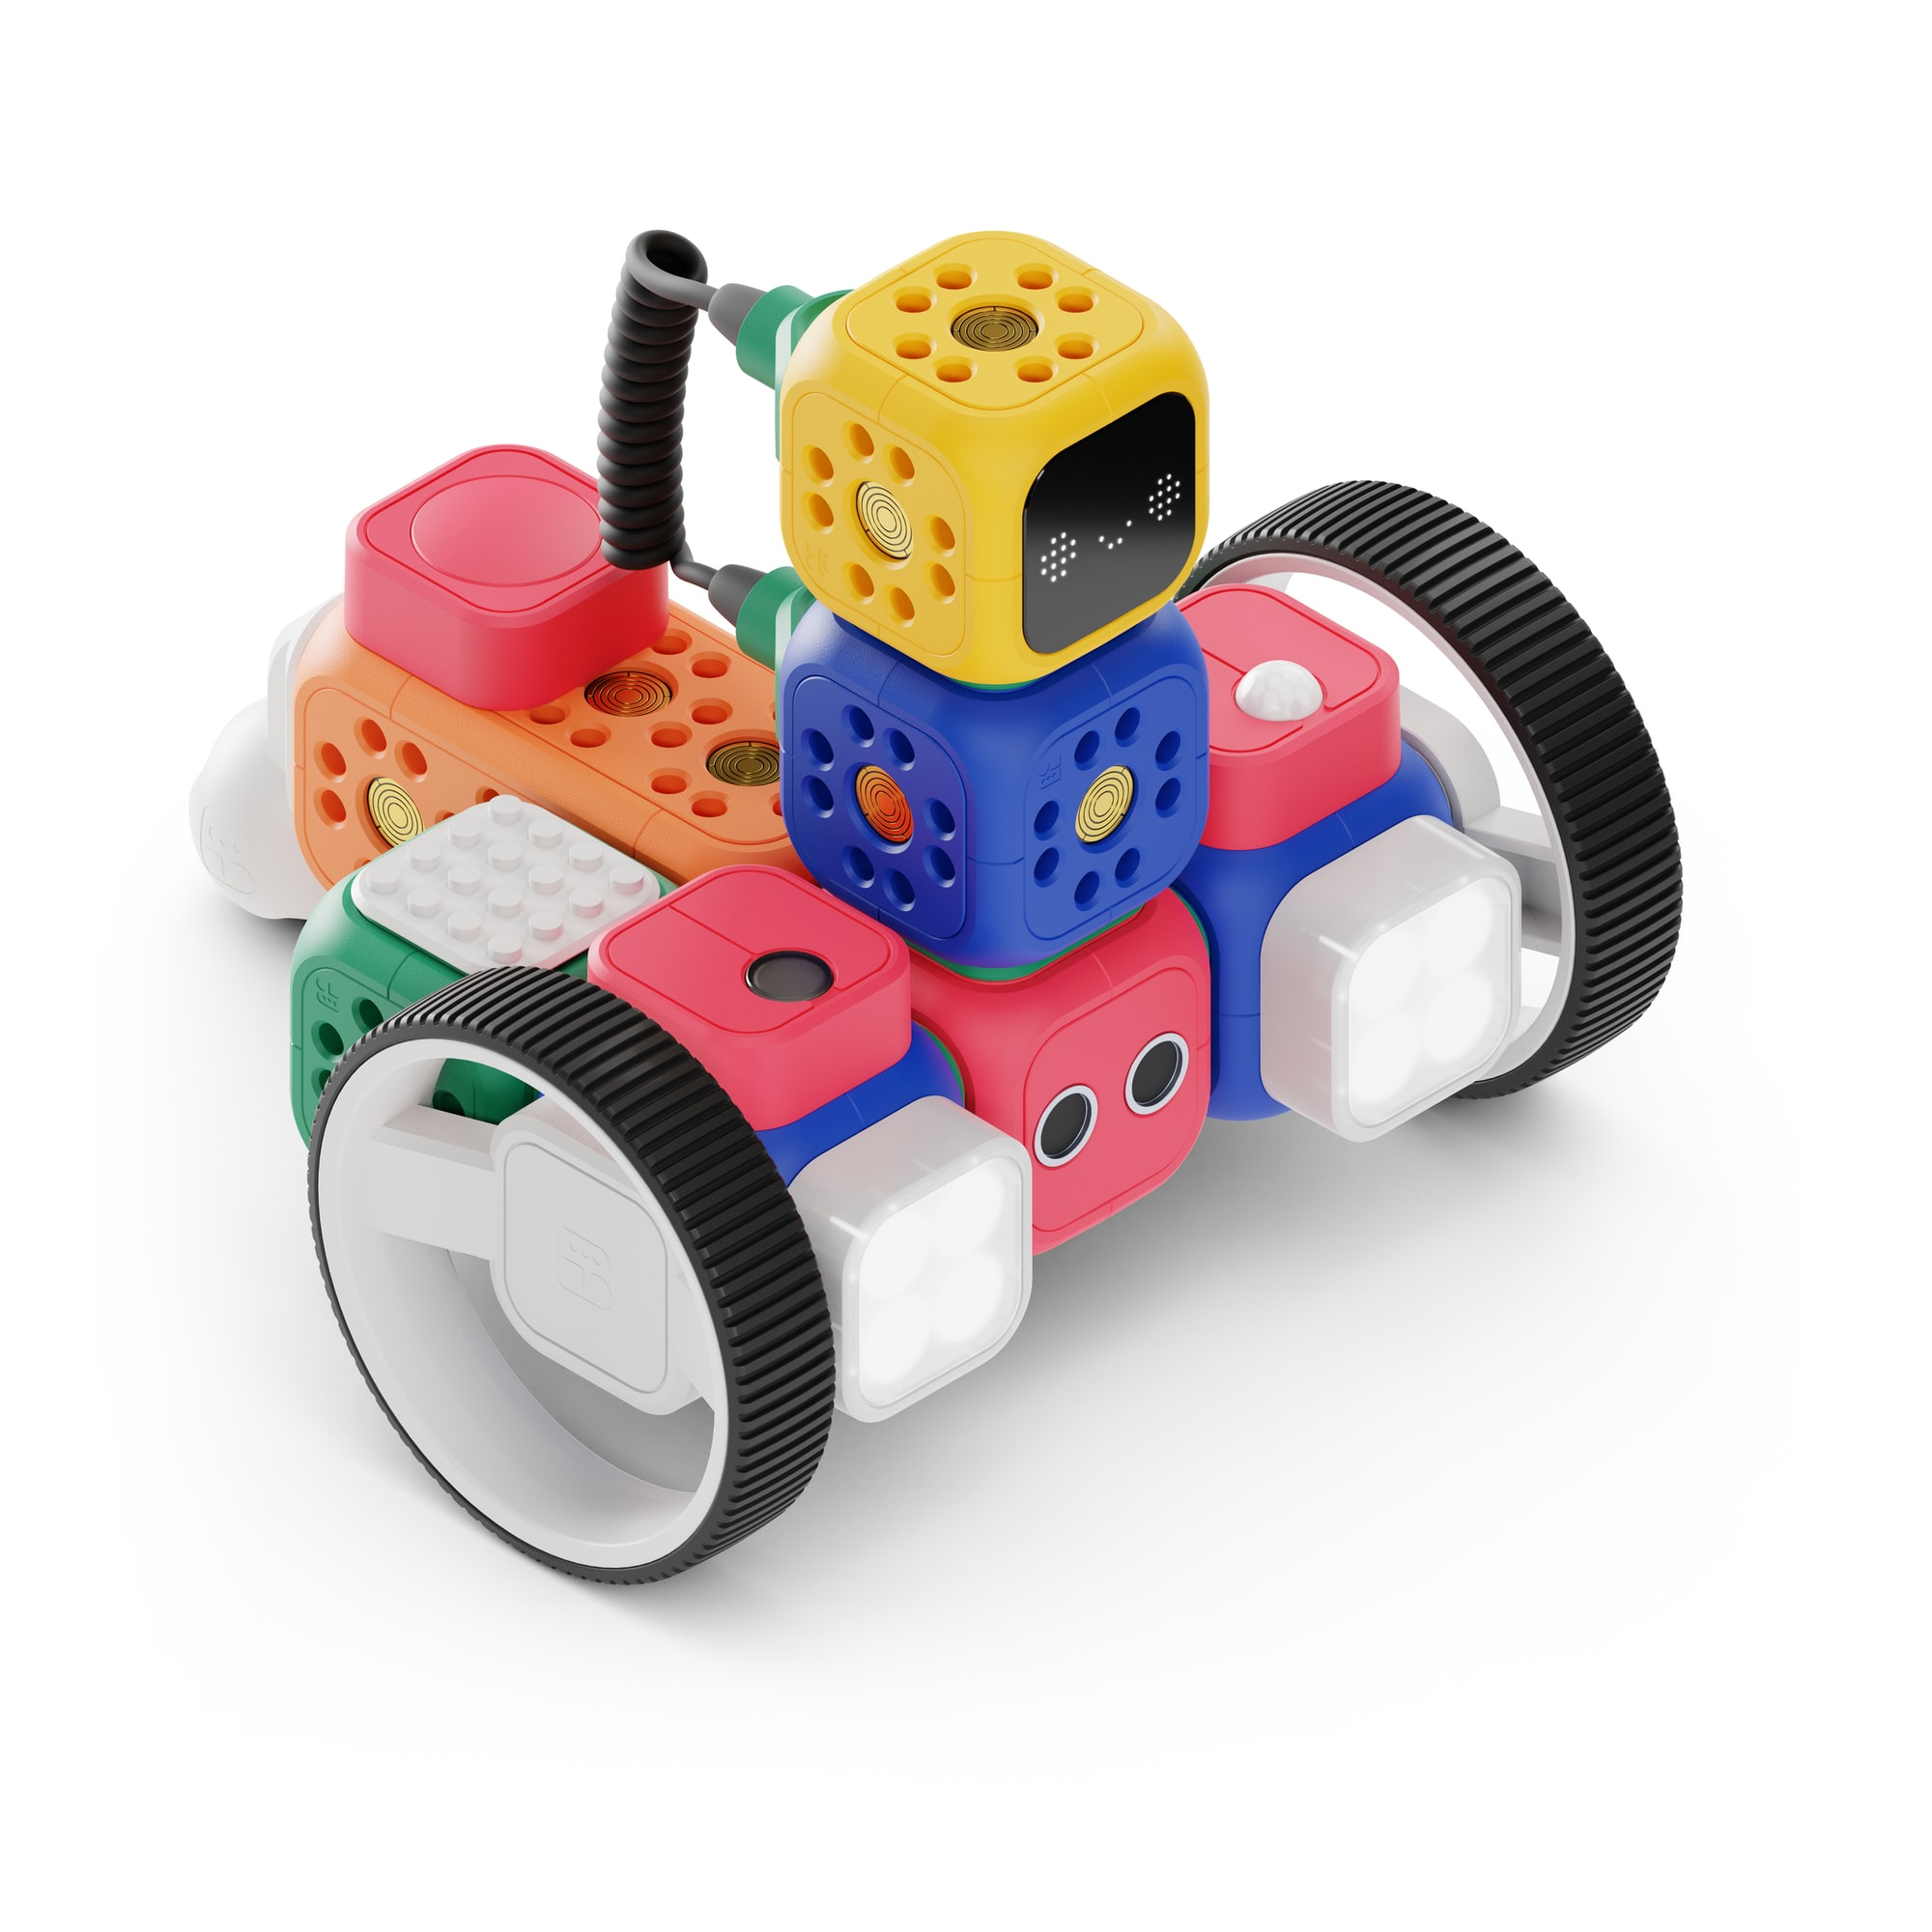 Learning the new robotics jargon is like cracking a code